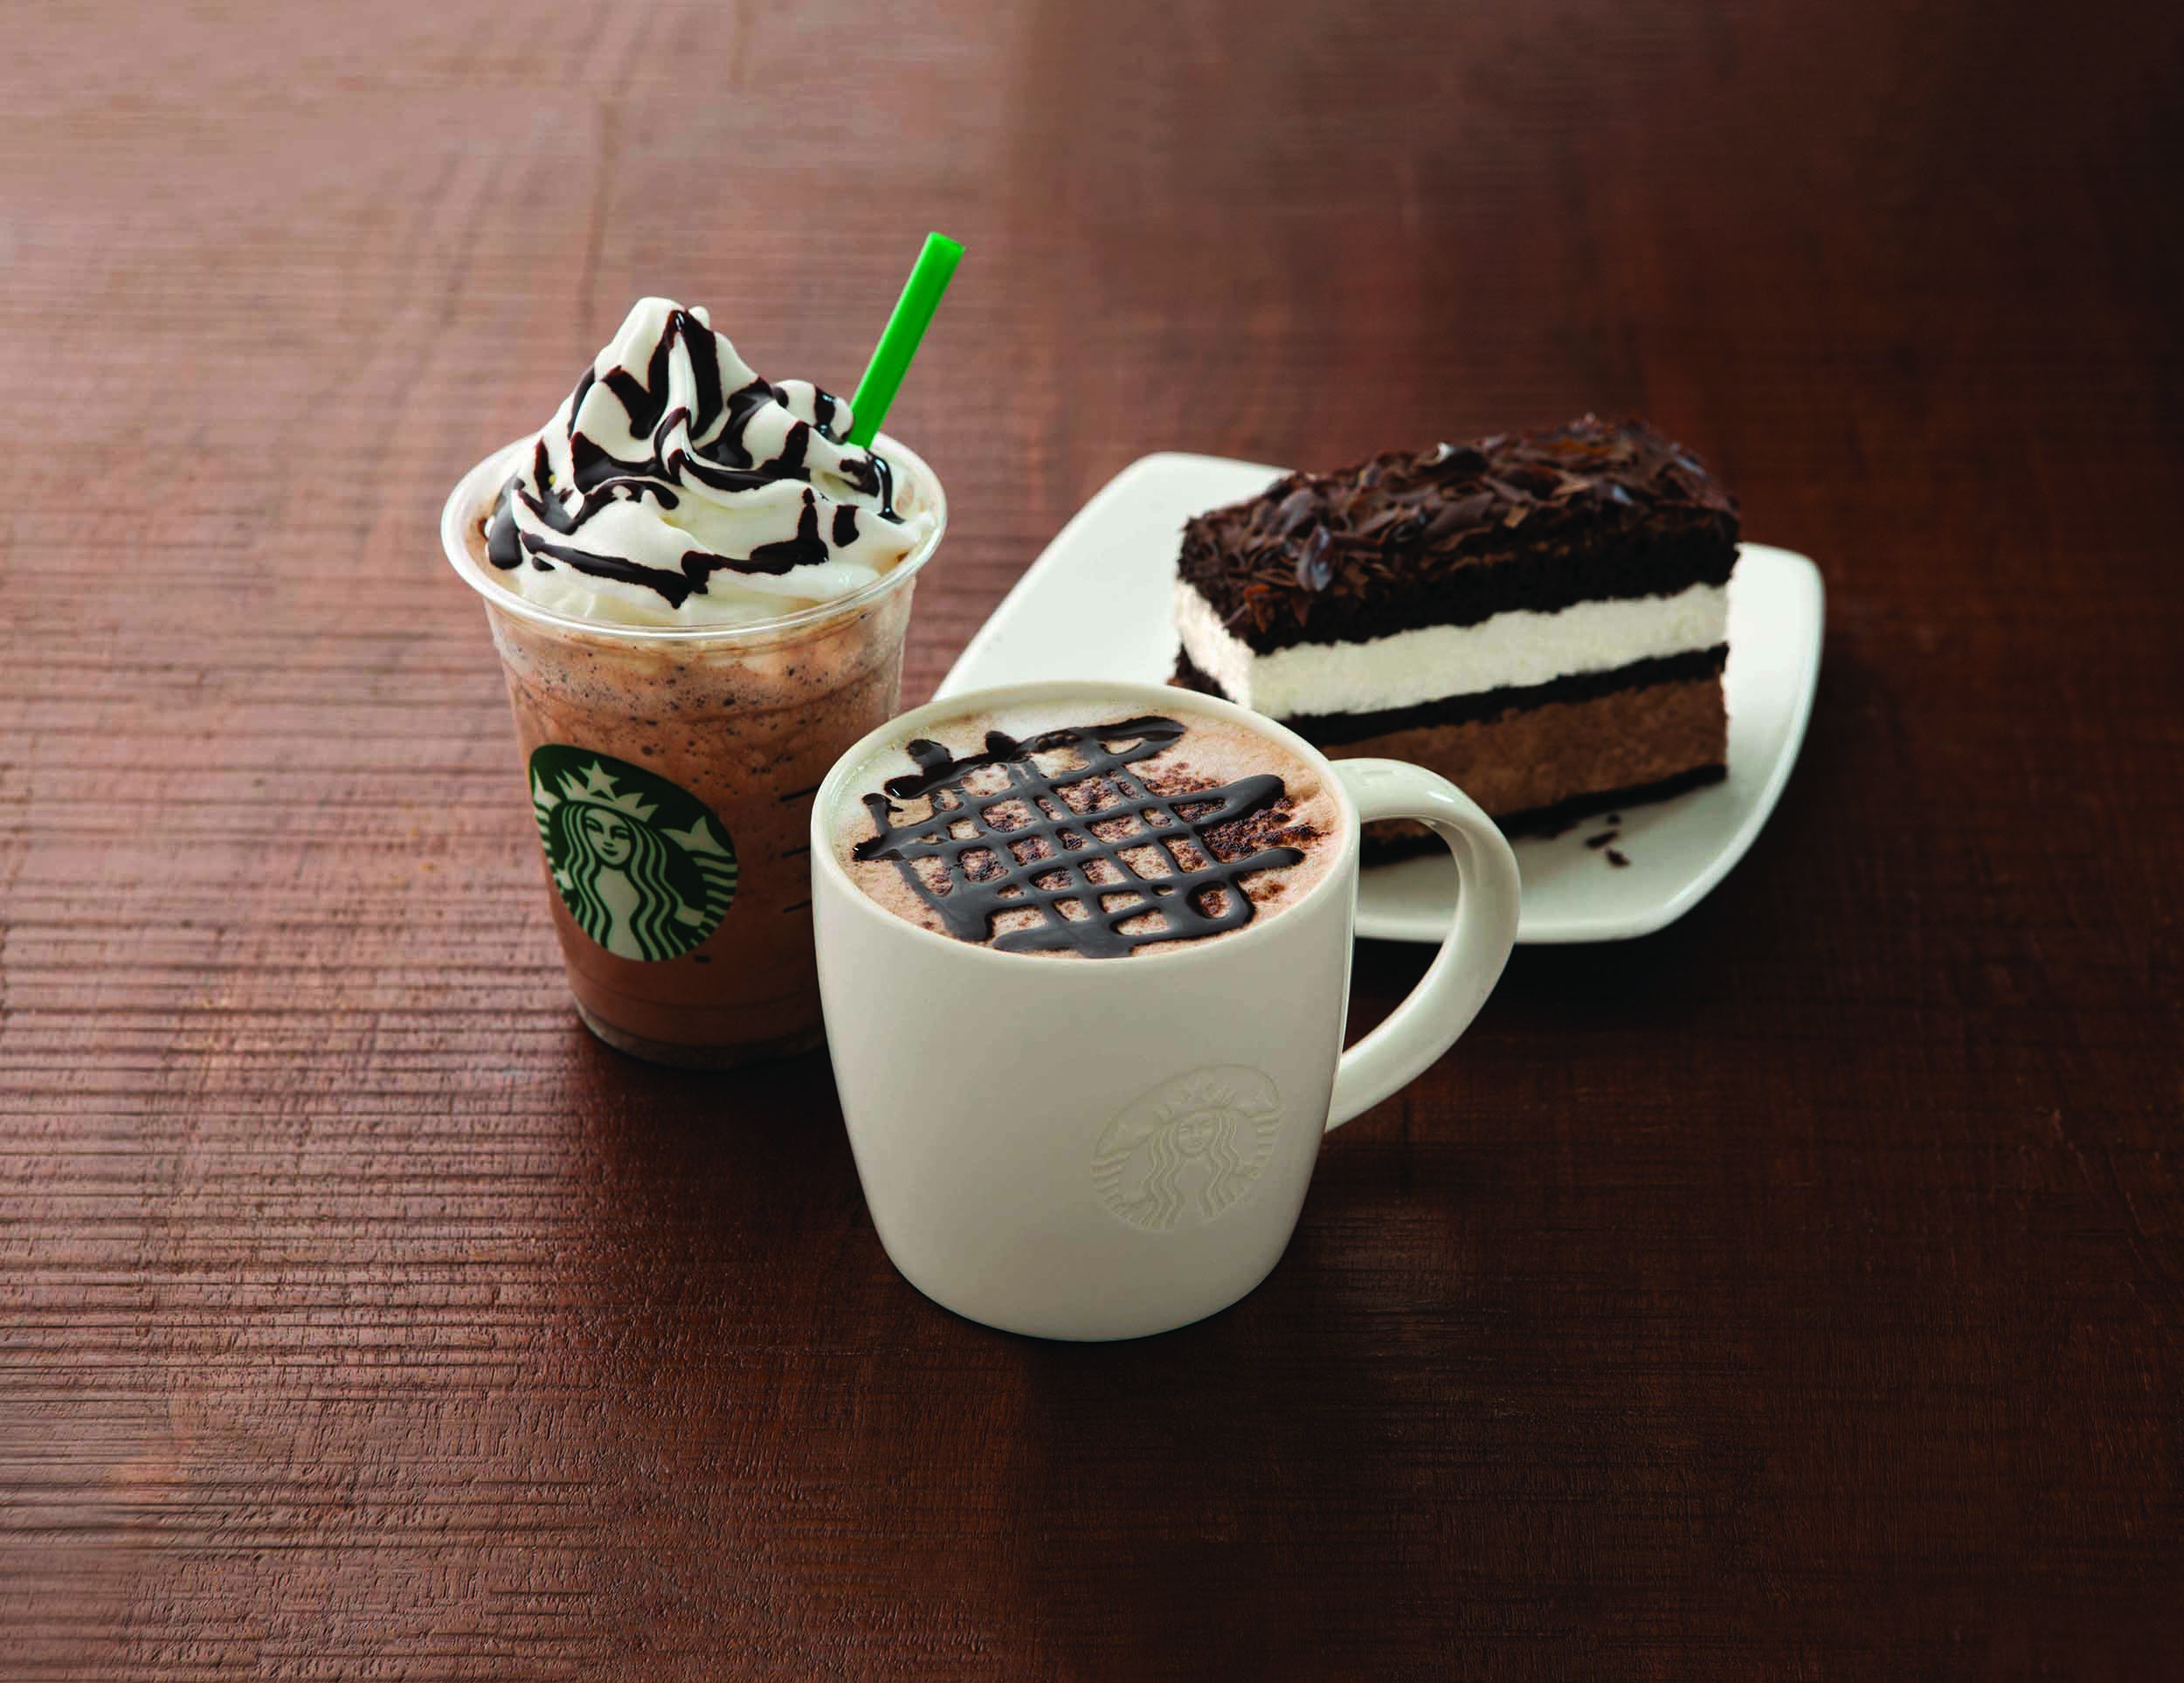 Starbucks Chocolate Indulgence